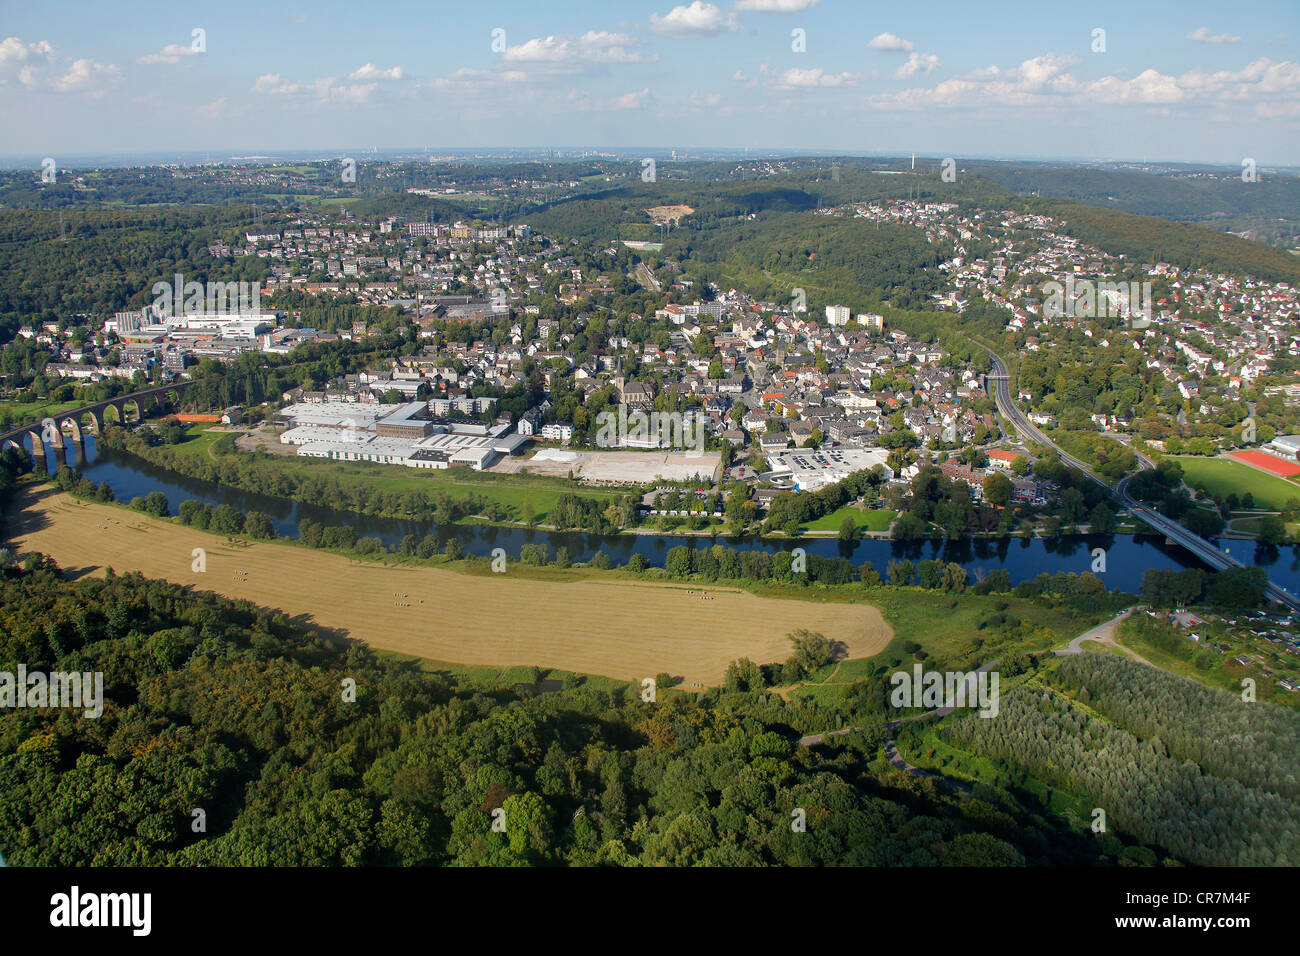 Aerial view, open space beside the Ruhr River, Herdecke, Ruhr Area, North Rhine-Westphalia, Germany, Europe - Stock Image